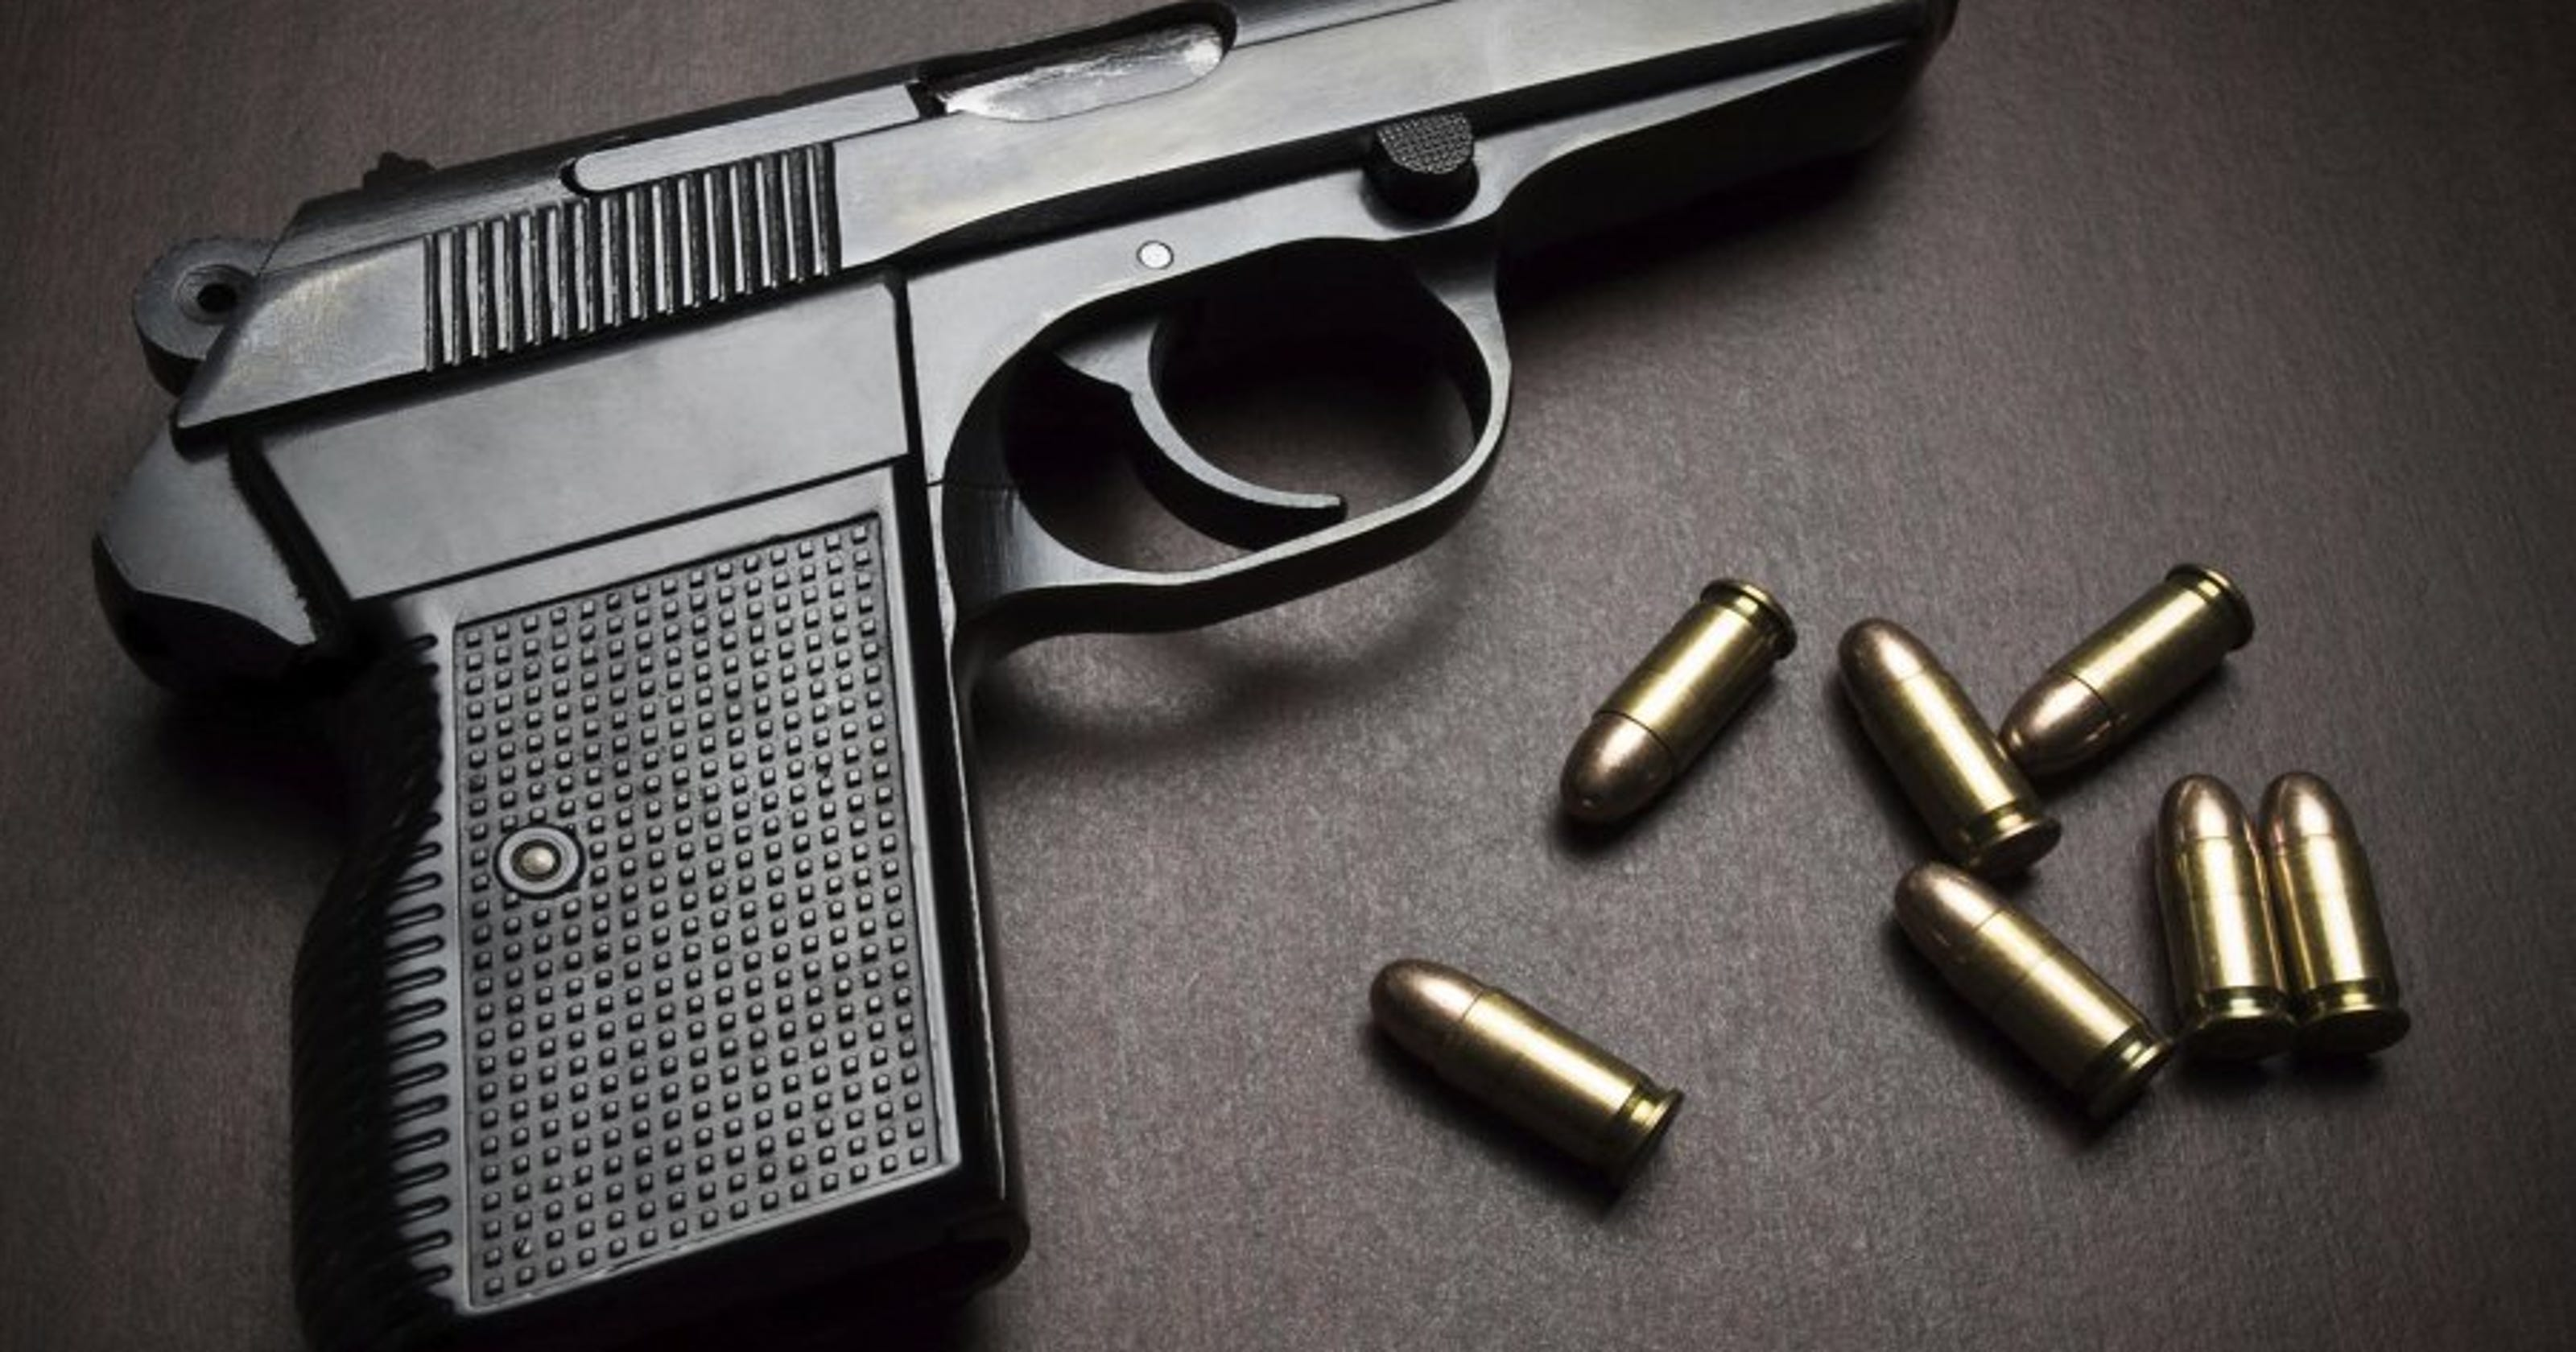 Memphis UPS facility site of one of the largest gun thefts